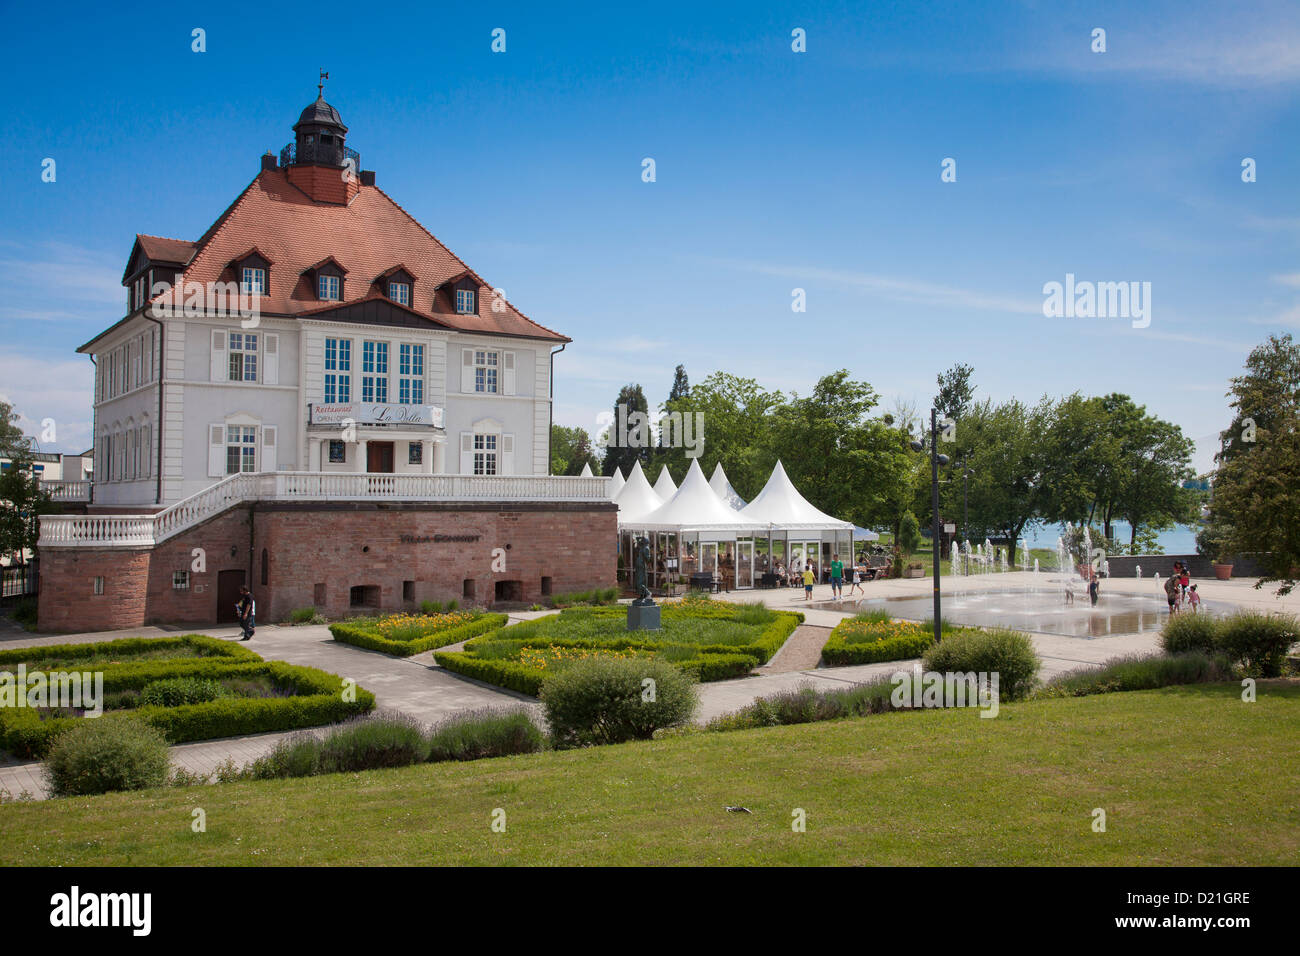 Restaurant inside of Villa Schmidt with fountain, Kehl, Baden-Wurttemberg, Germany, Europe - Stock Image